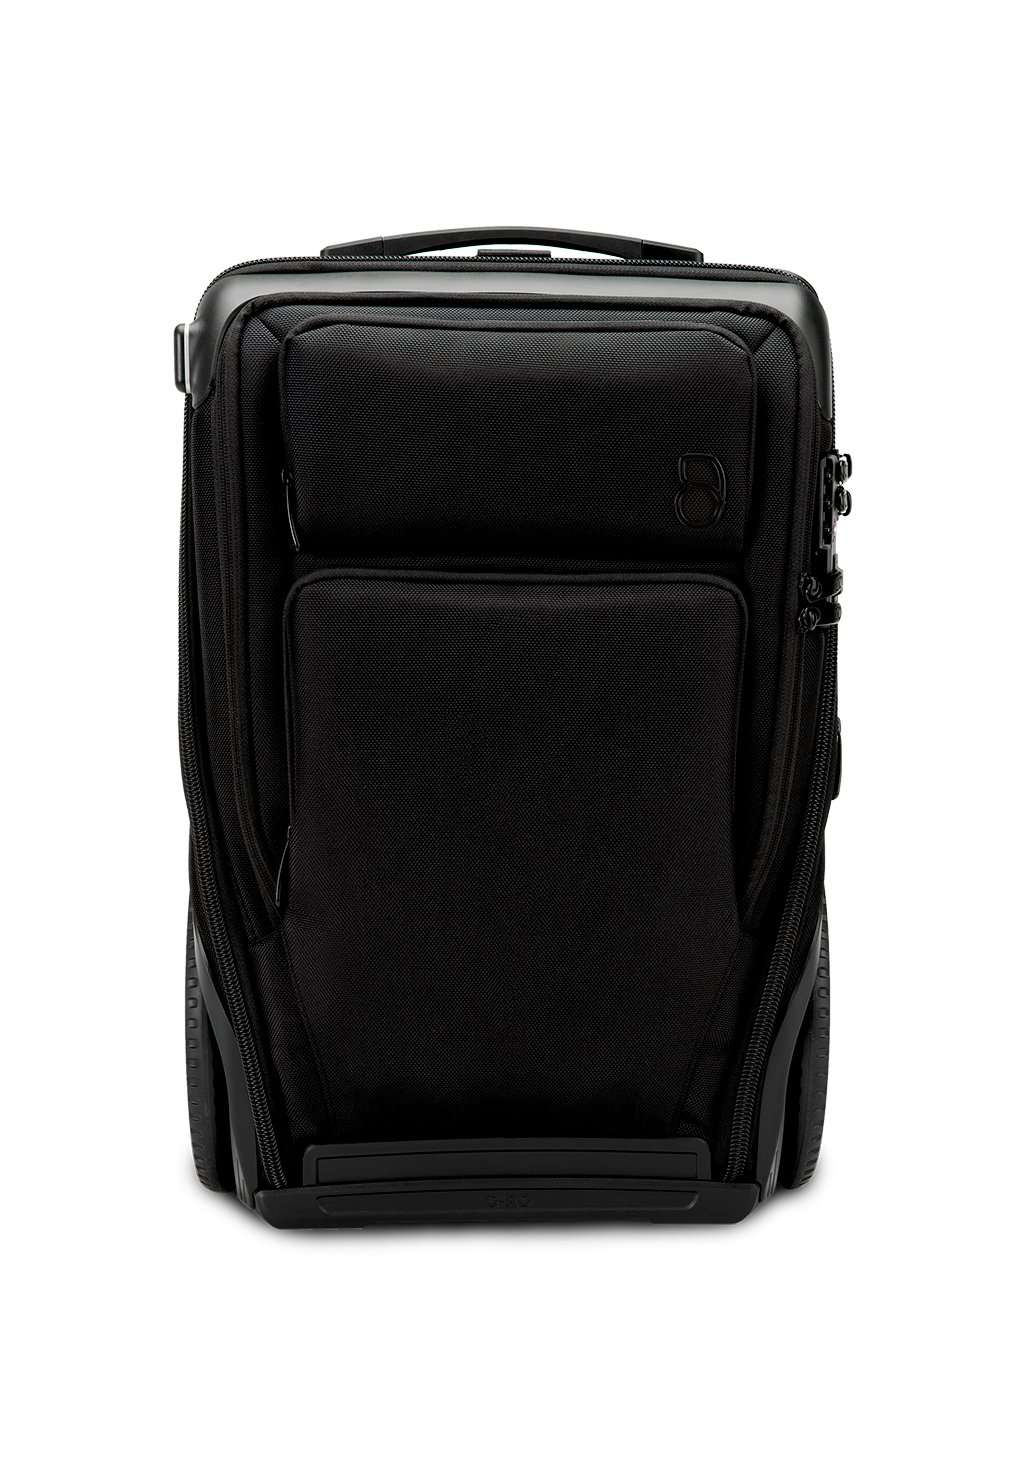 The G-Ro Carry-On Classic travel product recommended by Justin Walter on Lifney.